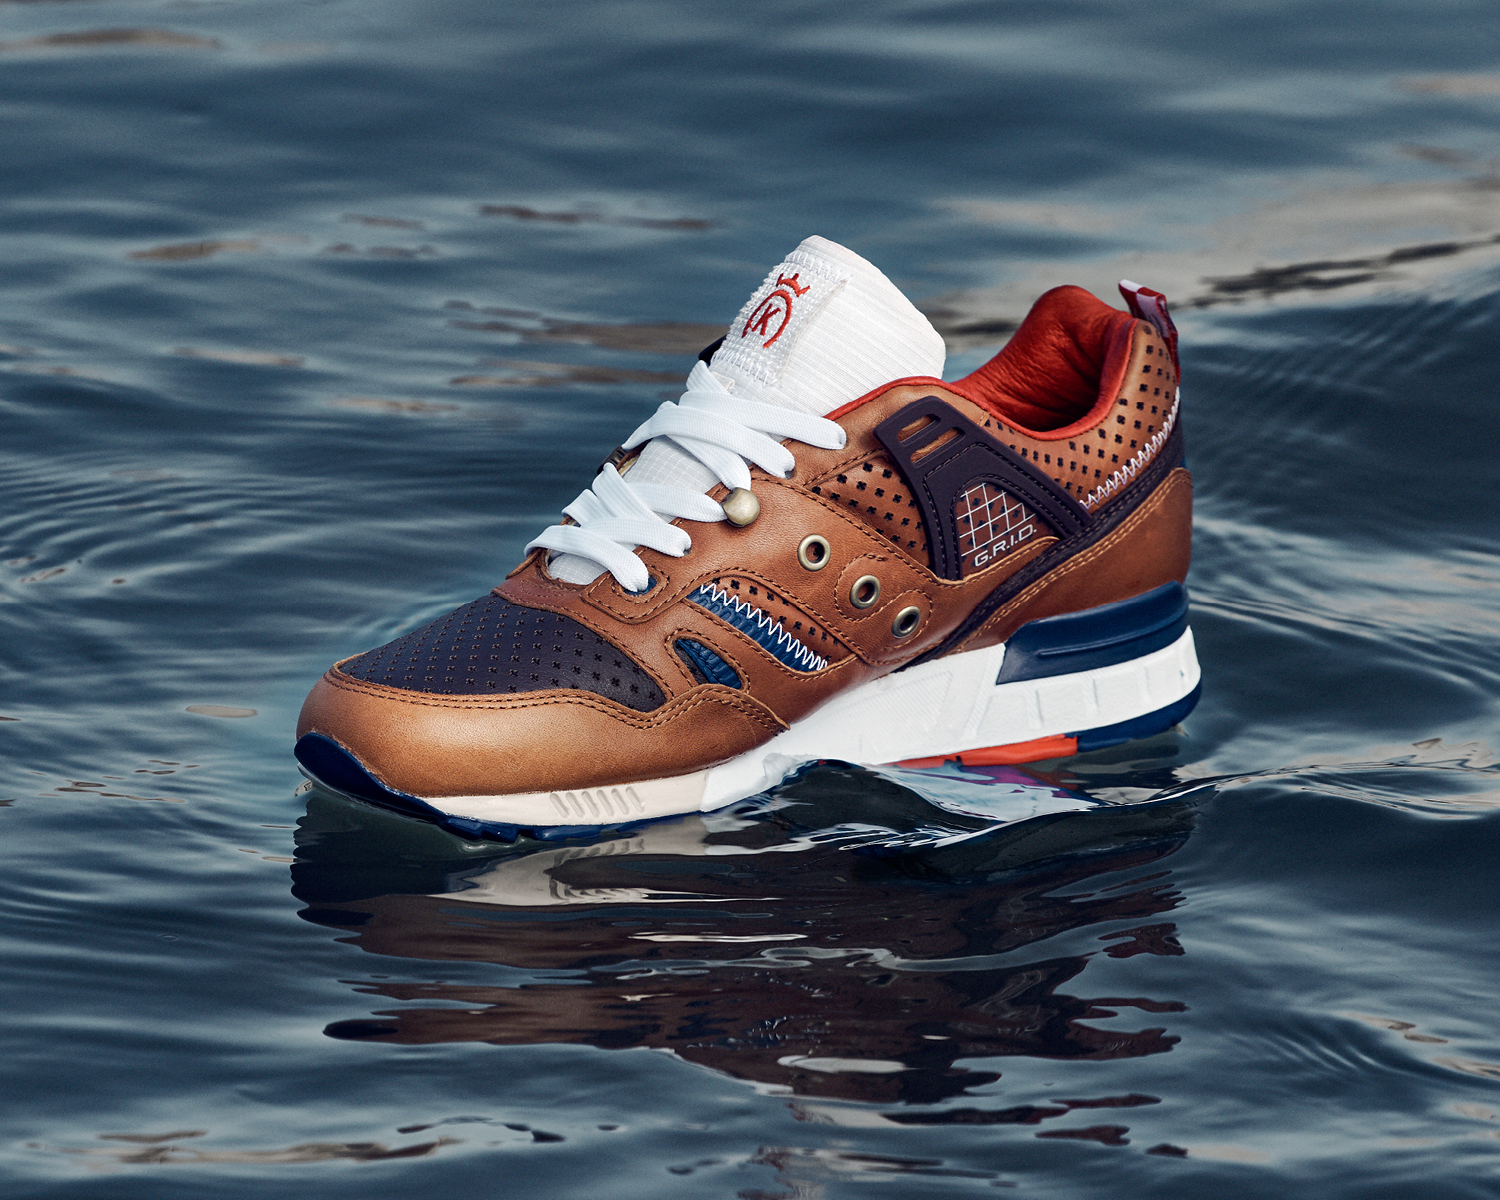 24KILATES-SAUCONY-LAVICTORIA-PRODUCTPICTURES1-4.jpg